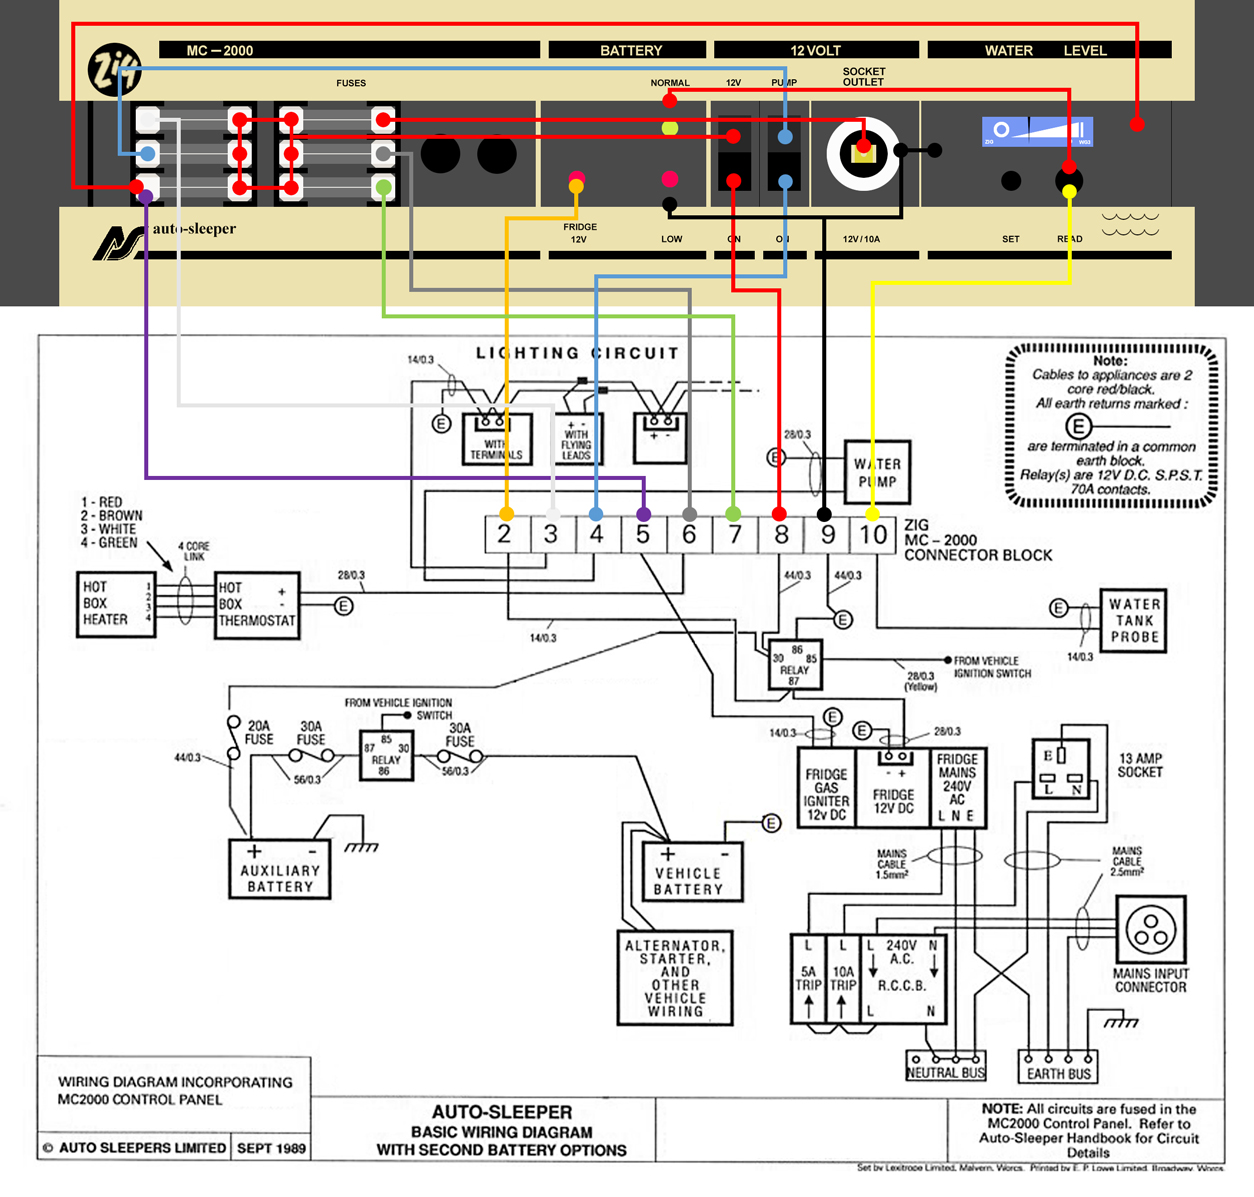 Caravan Zig Wiring Diagram Library 12v Mc 2000 Vw T25 Sir Adventure Unit